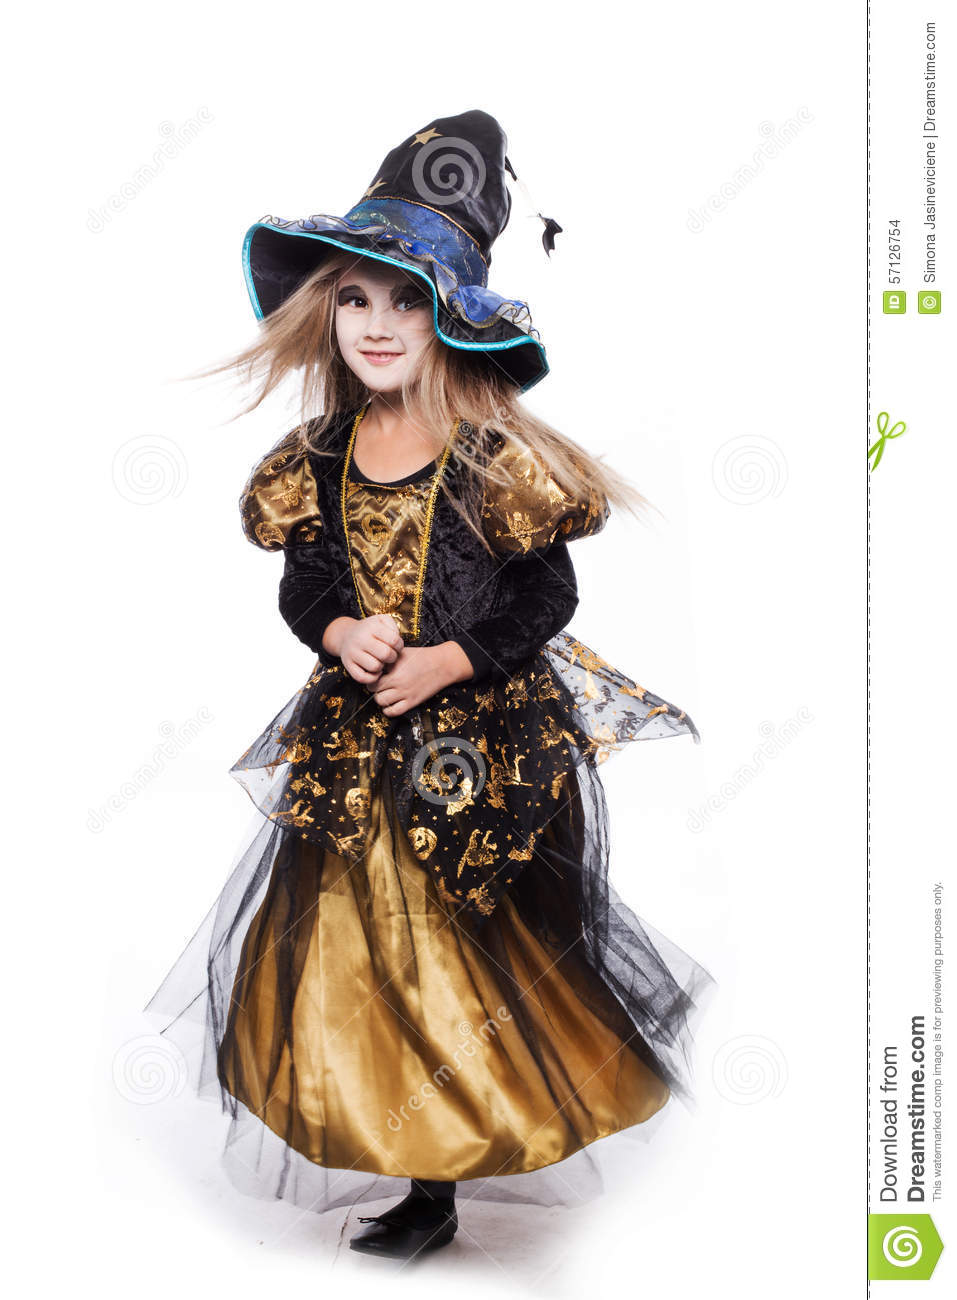 Adorable Little Blond Girl Wearing A Witch Costume Smiling At The ...